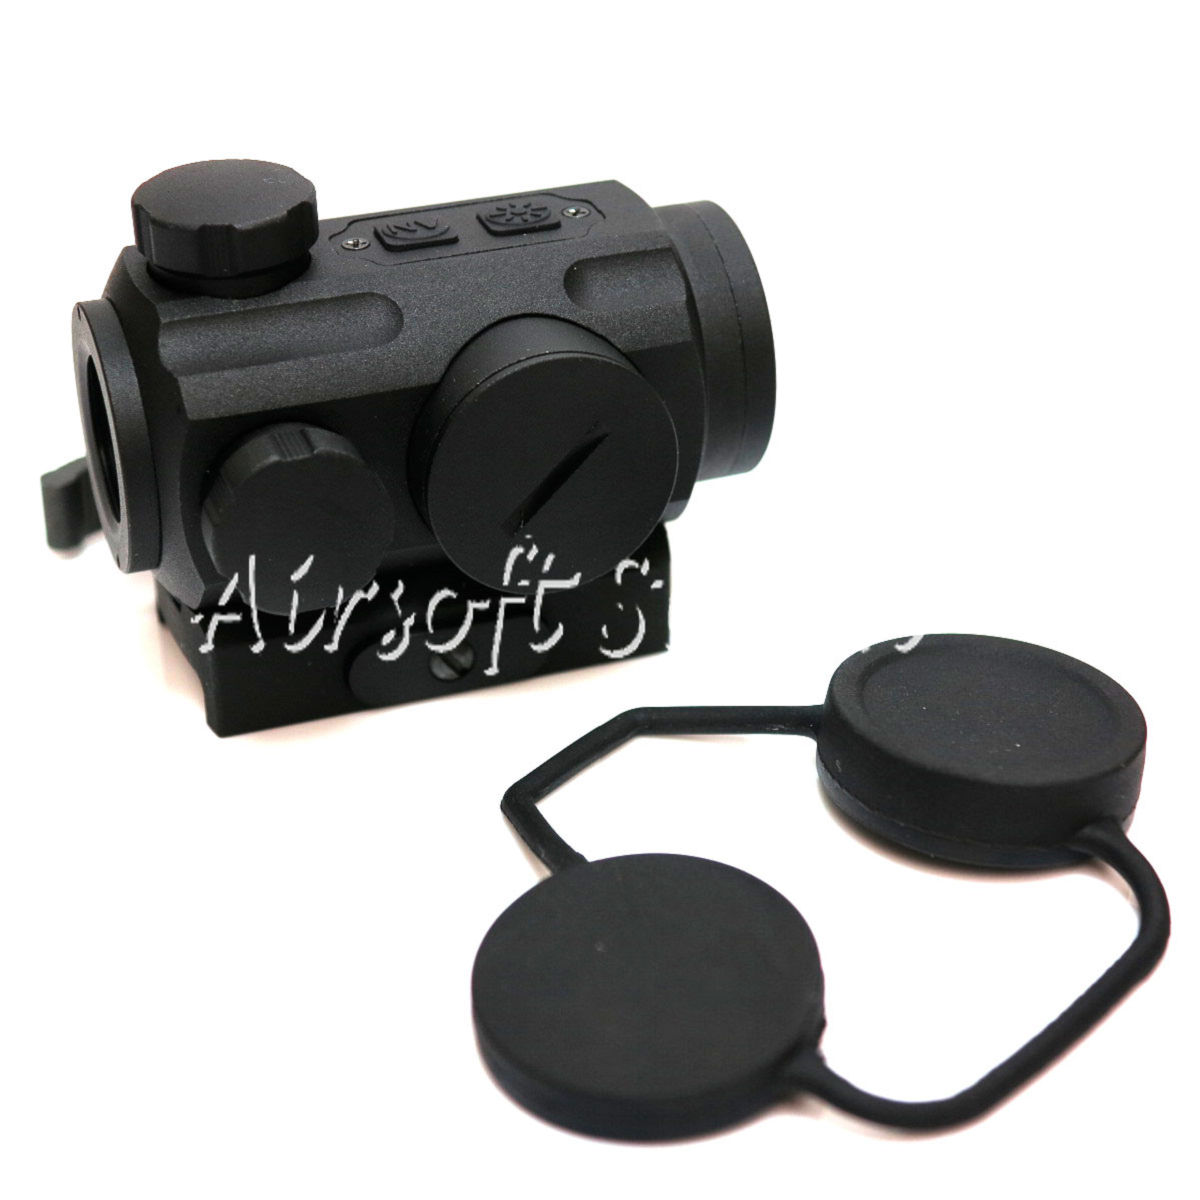 SWAT Gear Tactical 1x20 Micro T-1 Red Green Dot Sight Scope with QD Low Mount - Click Image to Close